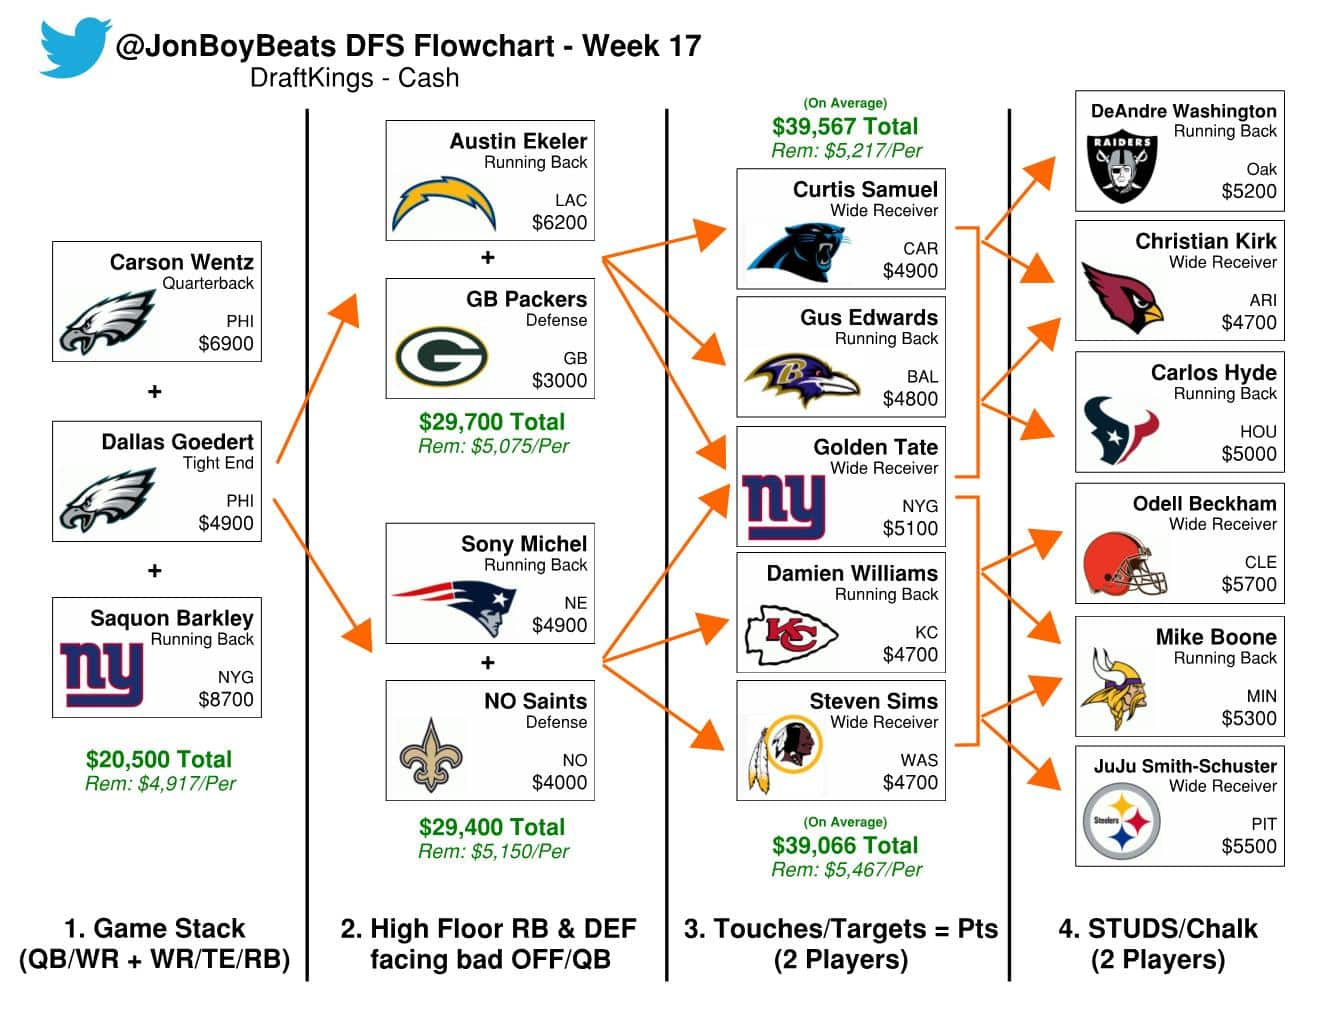 Week 17 NFL DFS Flowcharts: DraftKings Picks Sunday GPPs & Cash Games